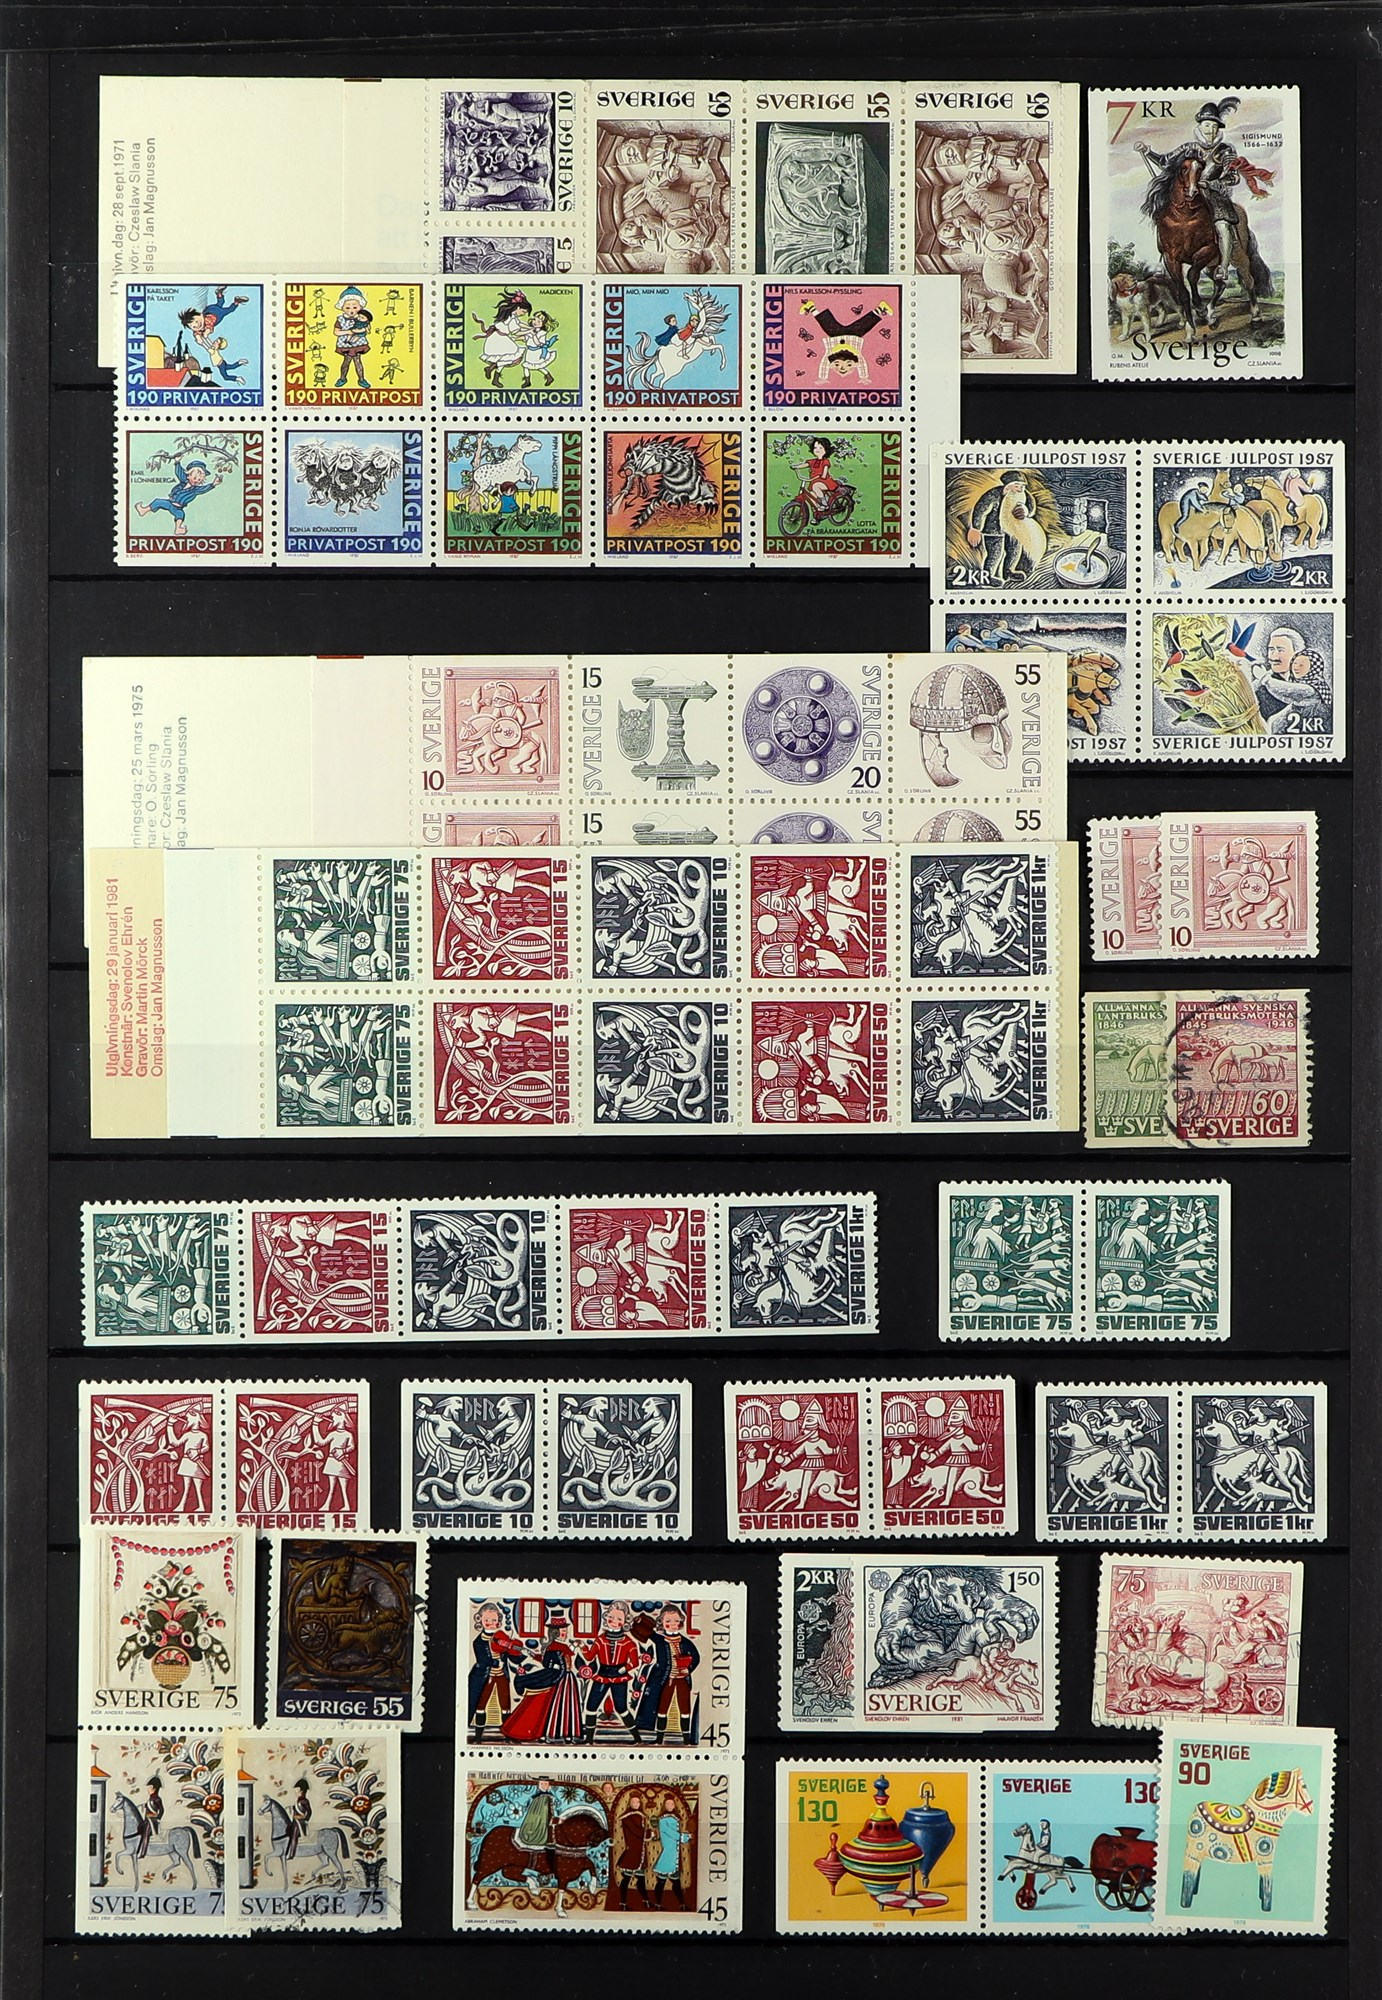 TOPICALS HORSES OF SWEDEN 1920's-90's mint and used (mostly never hinged ) collection incl. booklets - Image 2 of 2